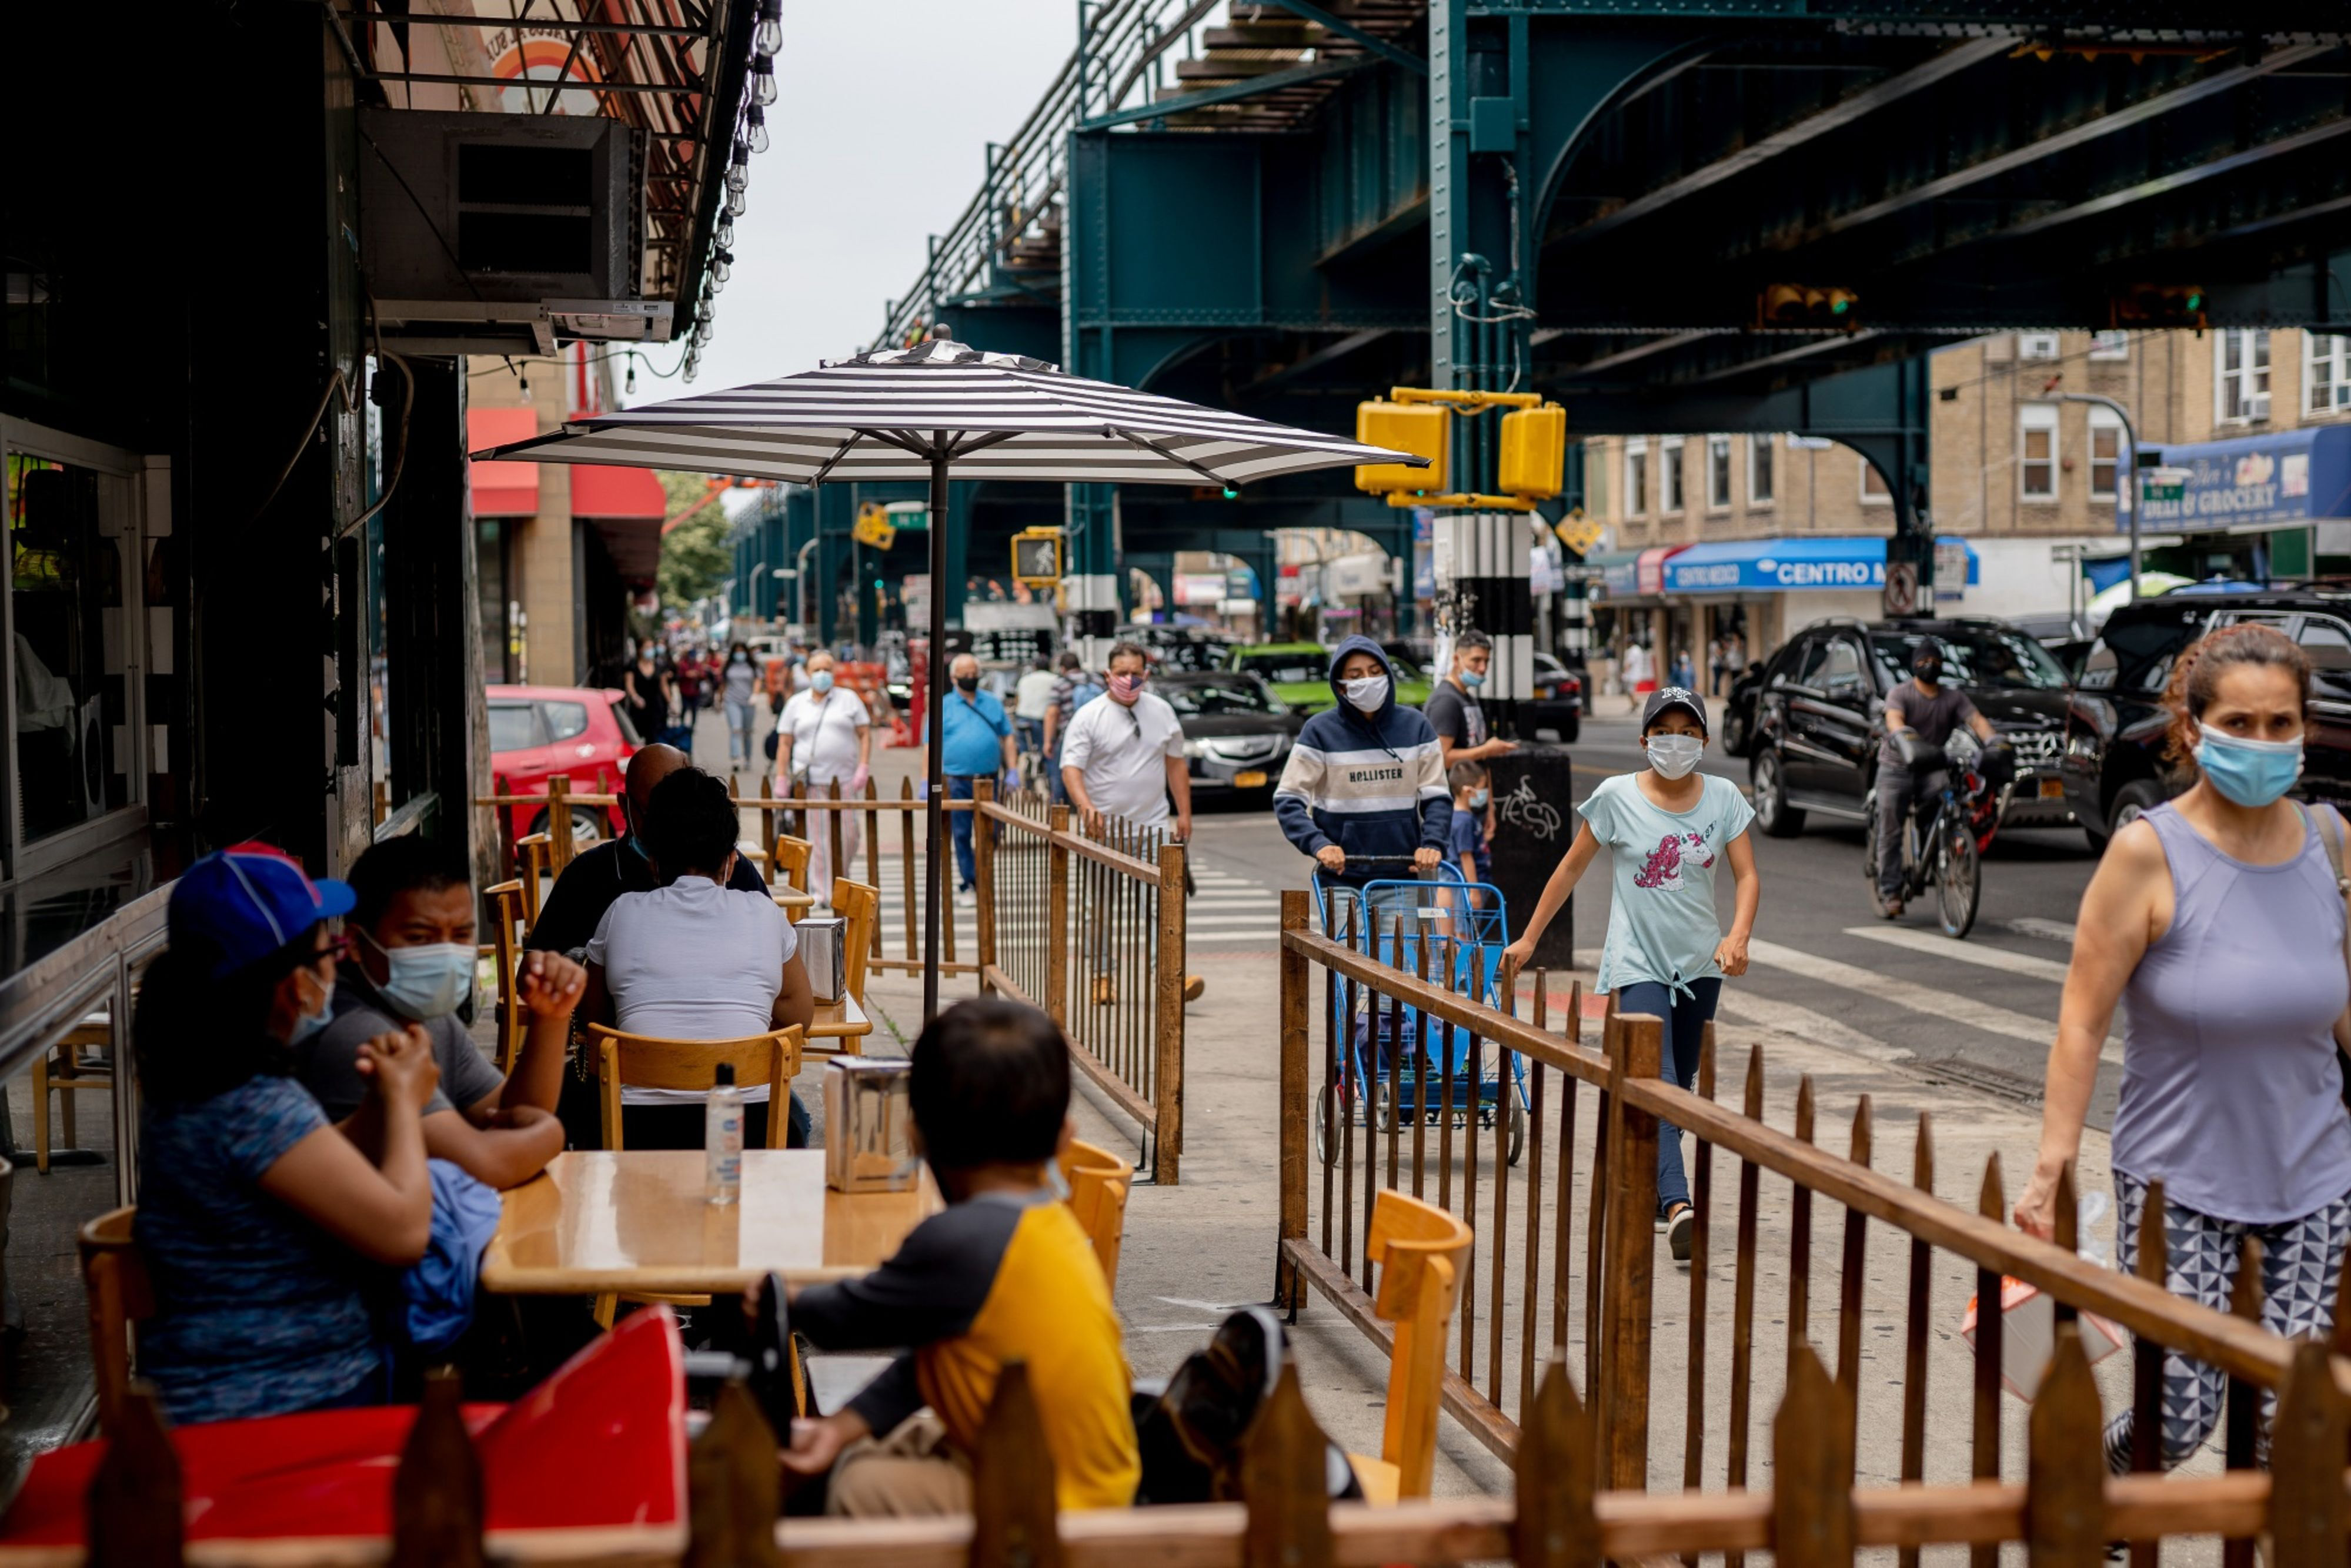 Pedestrians wearing protective masks pass in front of customers sitting outside to eat at a restaurant in the Corona neighborhood in the Queens borough of New York on June 27, 2020. MUST CREDIT: Bloomberg photo by Amir Hamja.